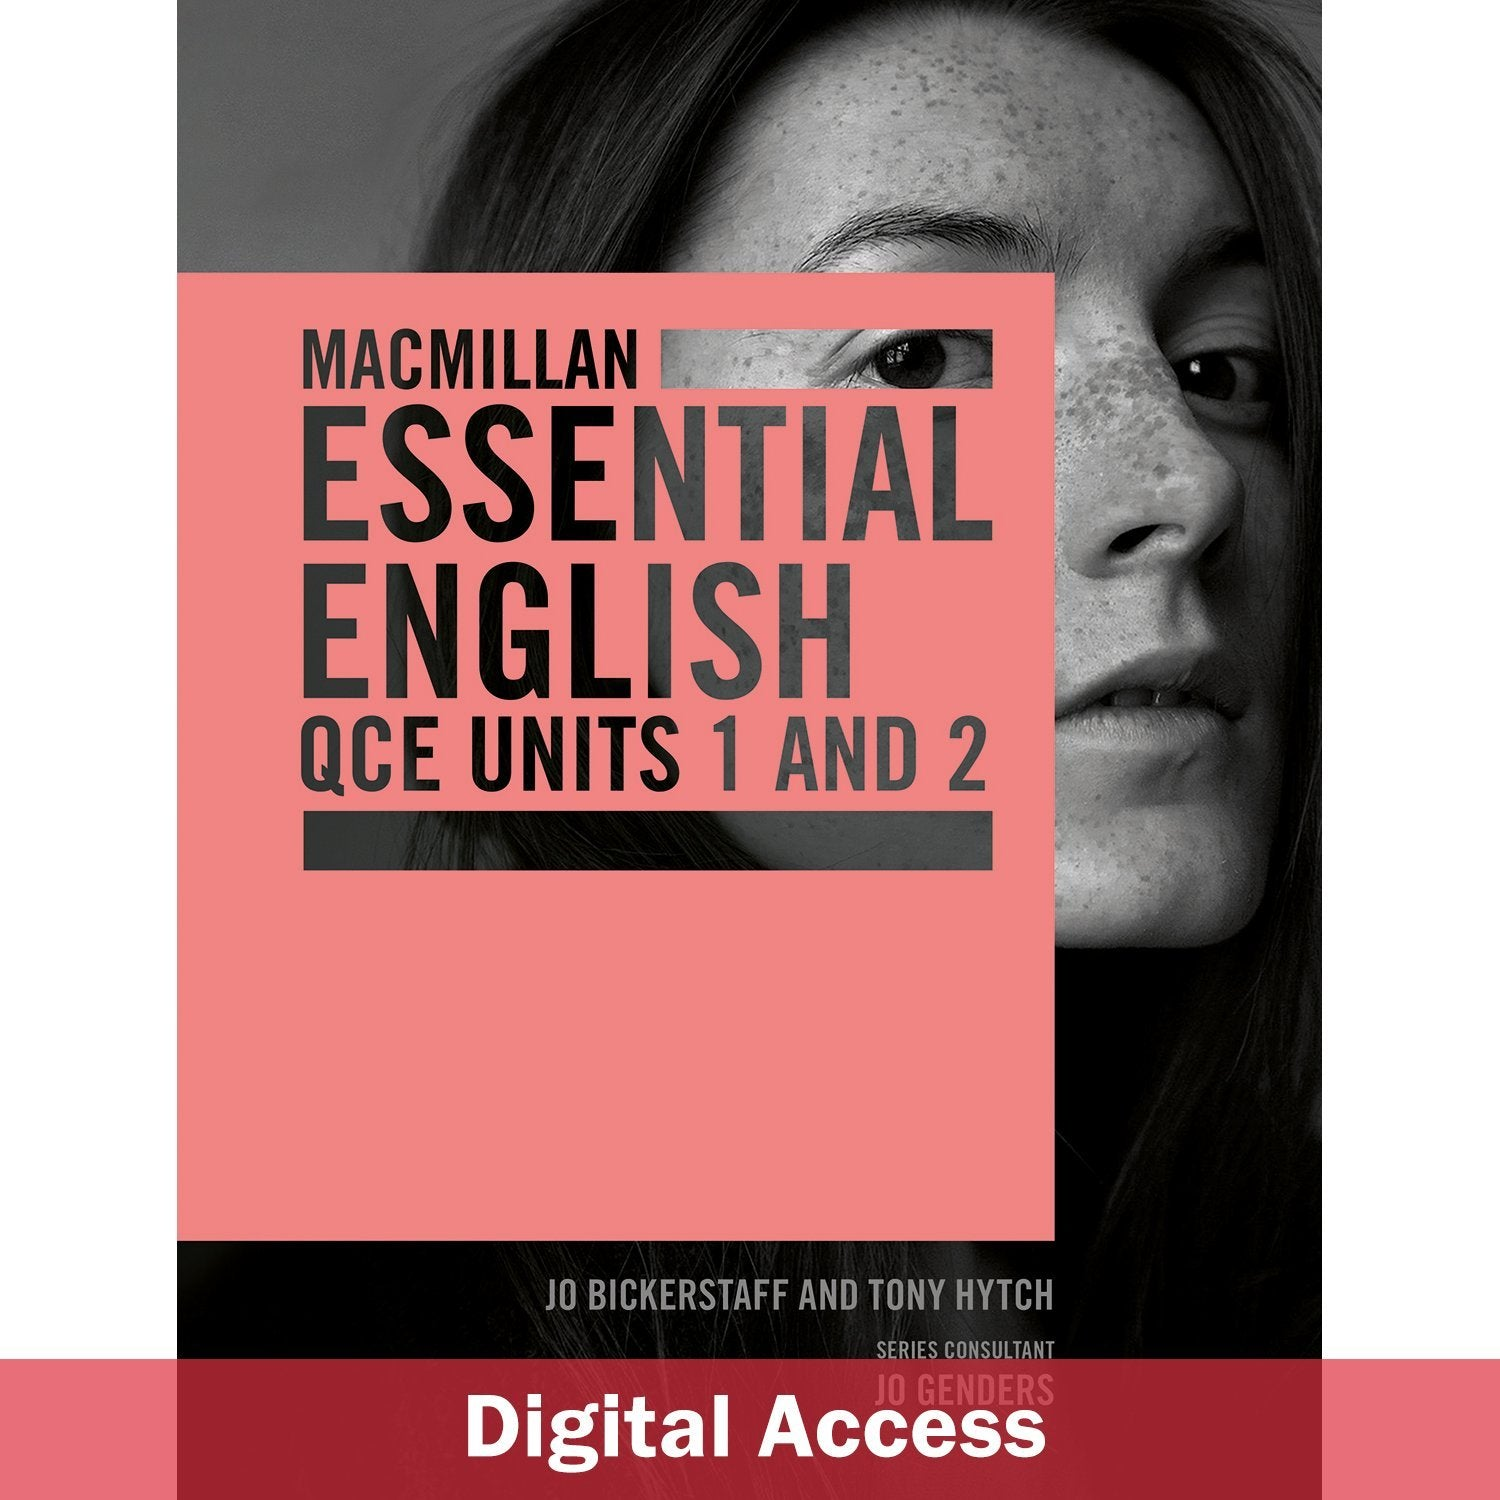 Macmillan Essential English QCE Units 1&2 Student Book 1-Year Reactivation Code